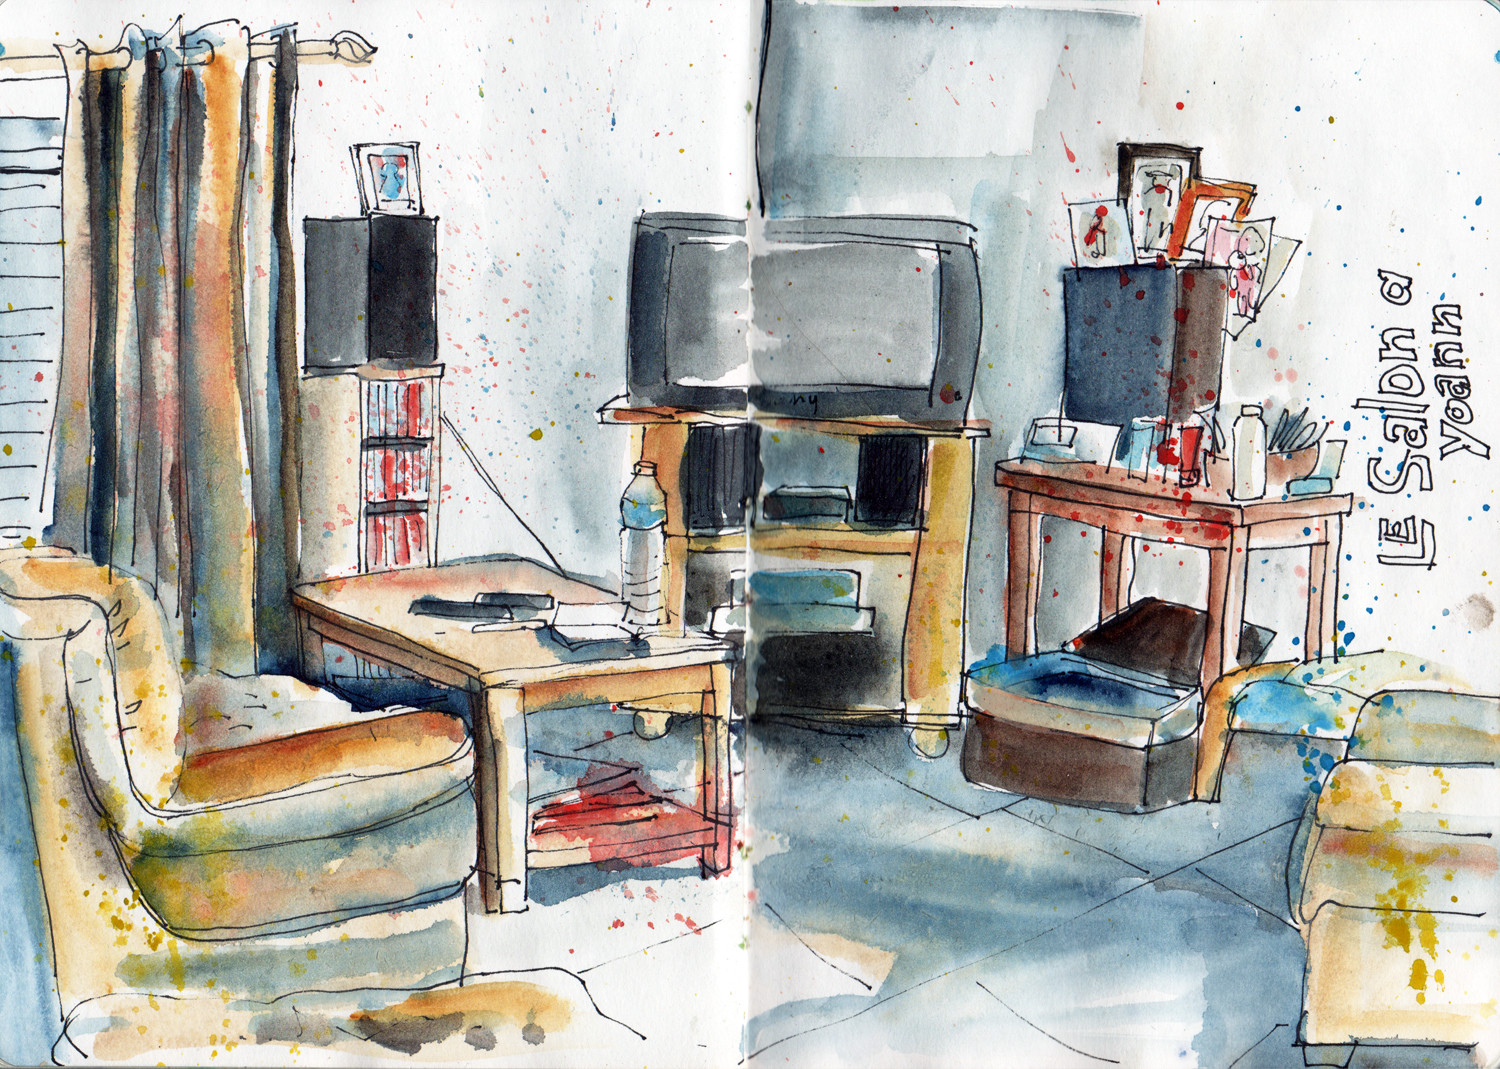 Interior sketch in pen and watercolour by Sophie Peanut